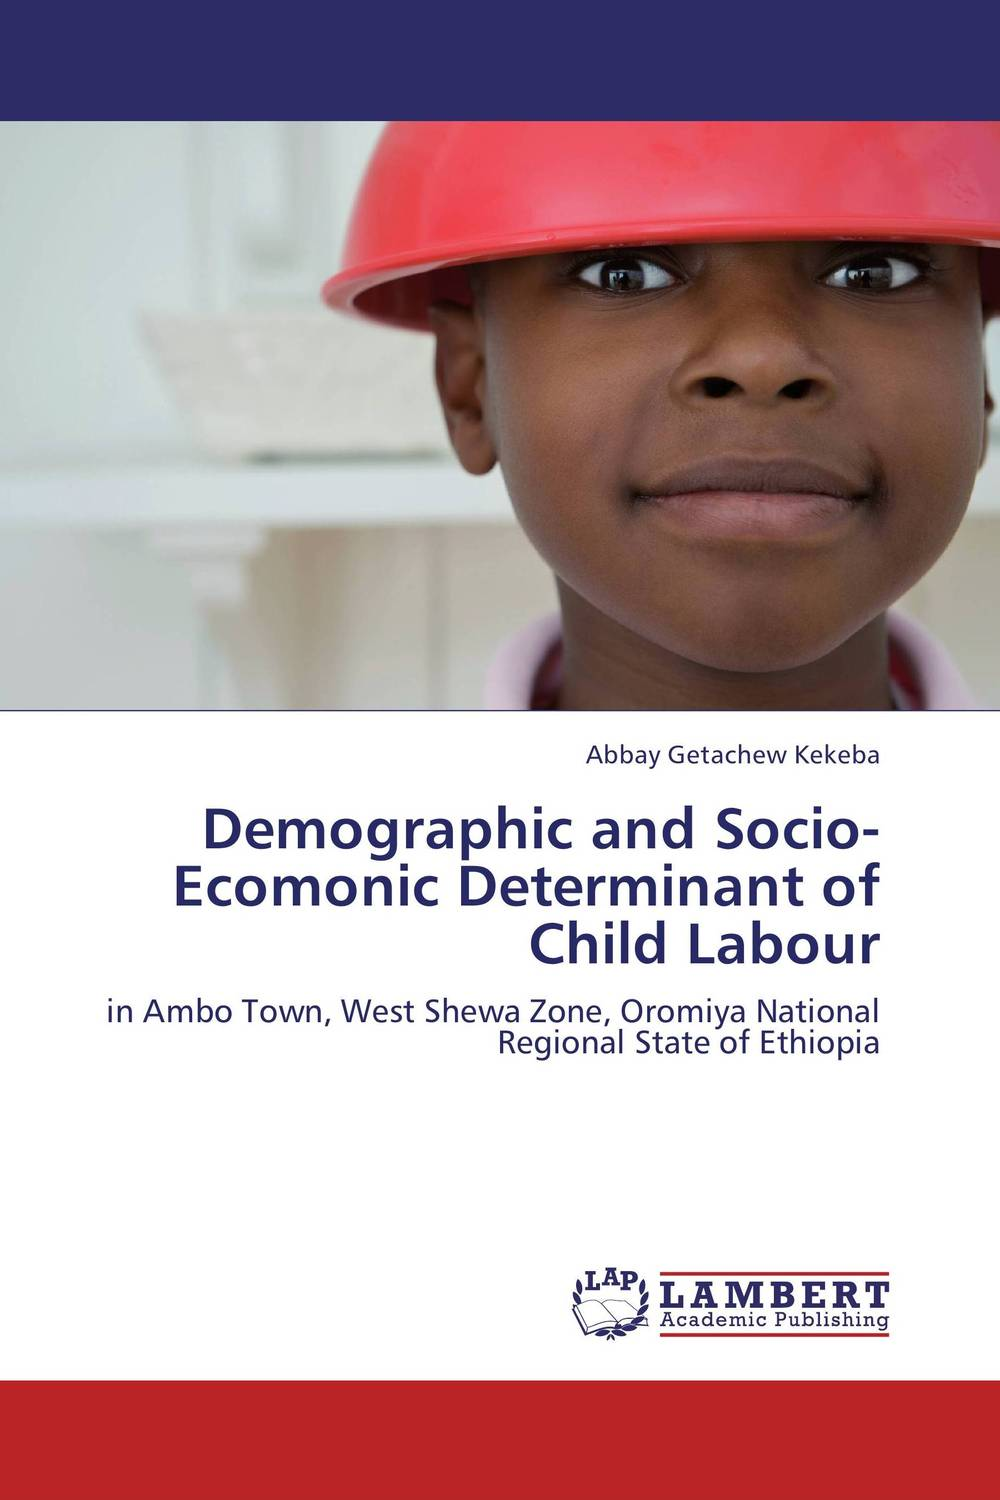 Demographic and Socio-Ecomonic Determinant of Child Labour ewa przyborowska child labour and demographic transition in thailand